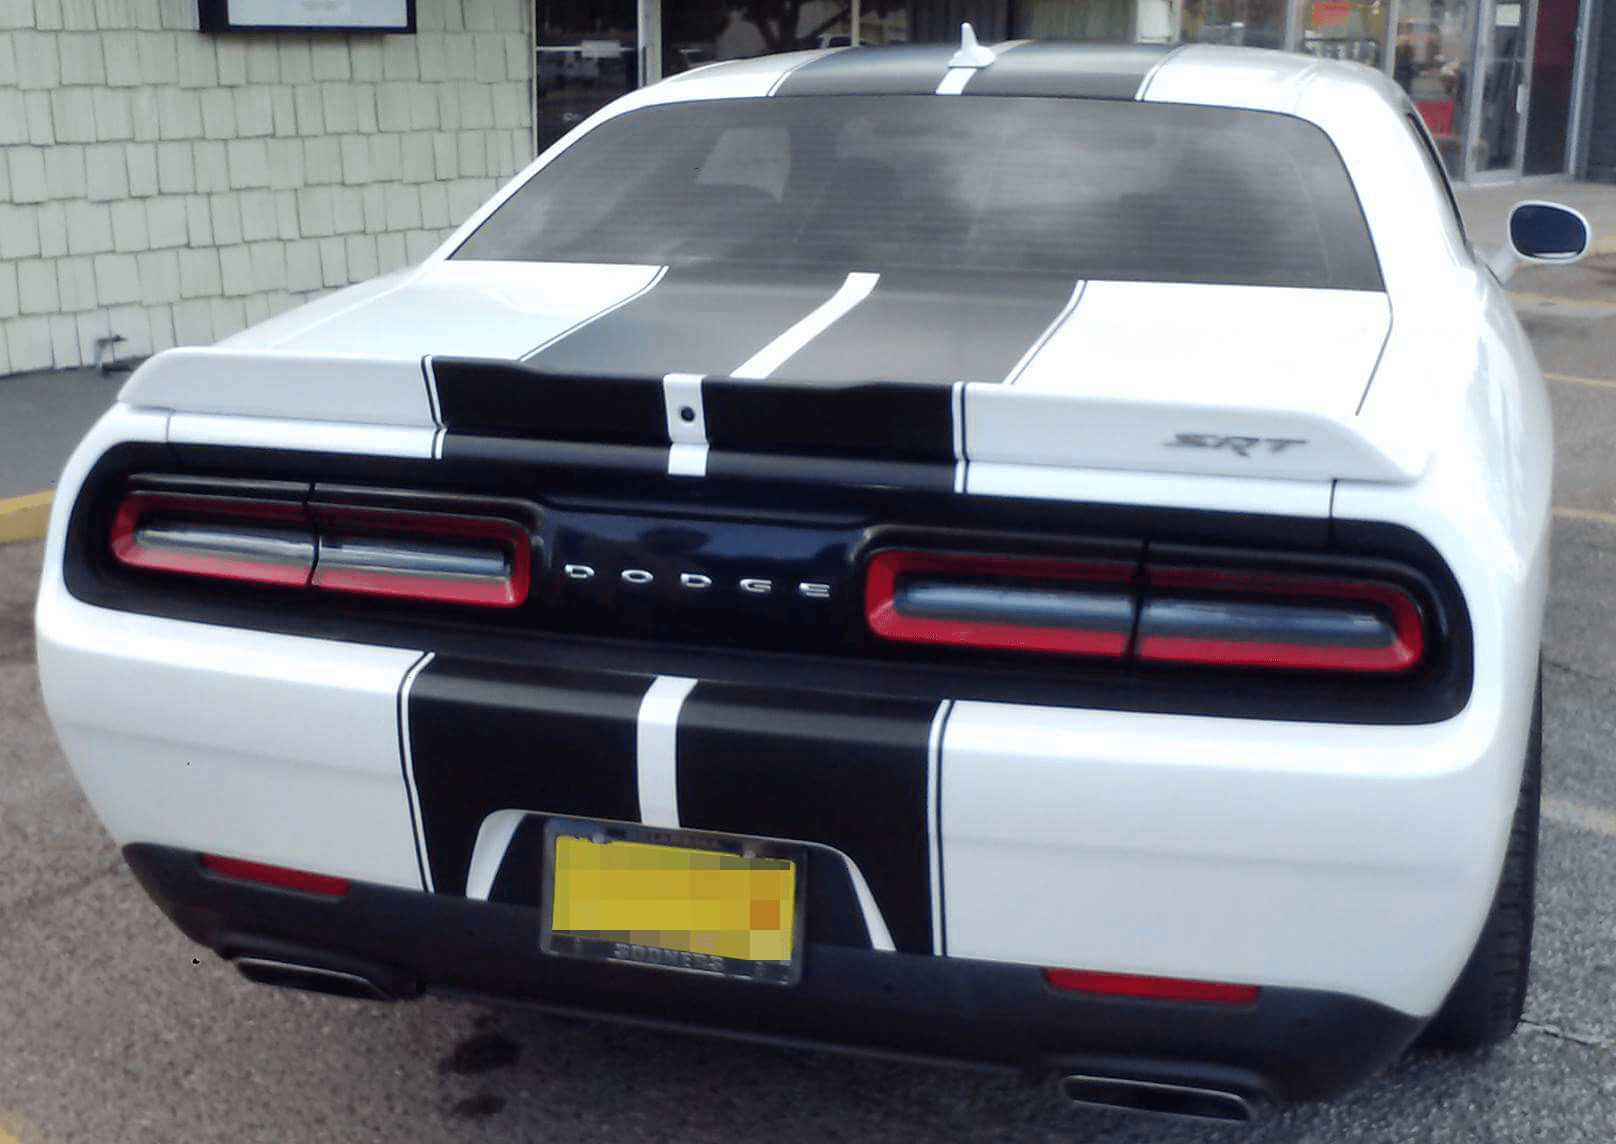 2015 2016 2017 2018 2019 2020 2021 Dodge Challenger Rally Racing Dual Stripes Kit Vinyl Graphics Stripes Decals Kit Fits Sxt Sxt Plus Gt Awd R T R Dodge Challenger Dodge Challenger Sxt Plus Dodge Challenger Sxt